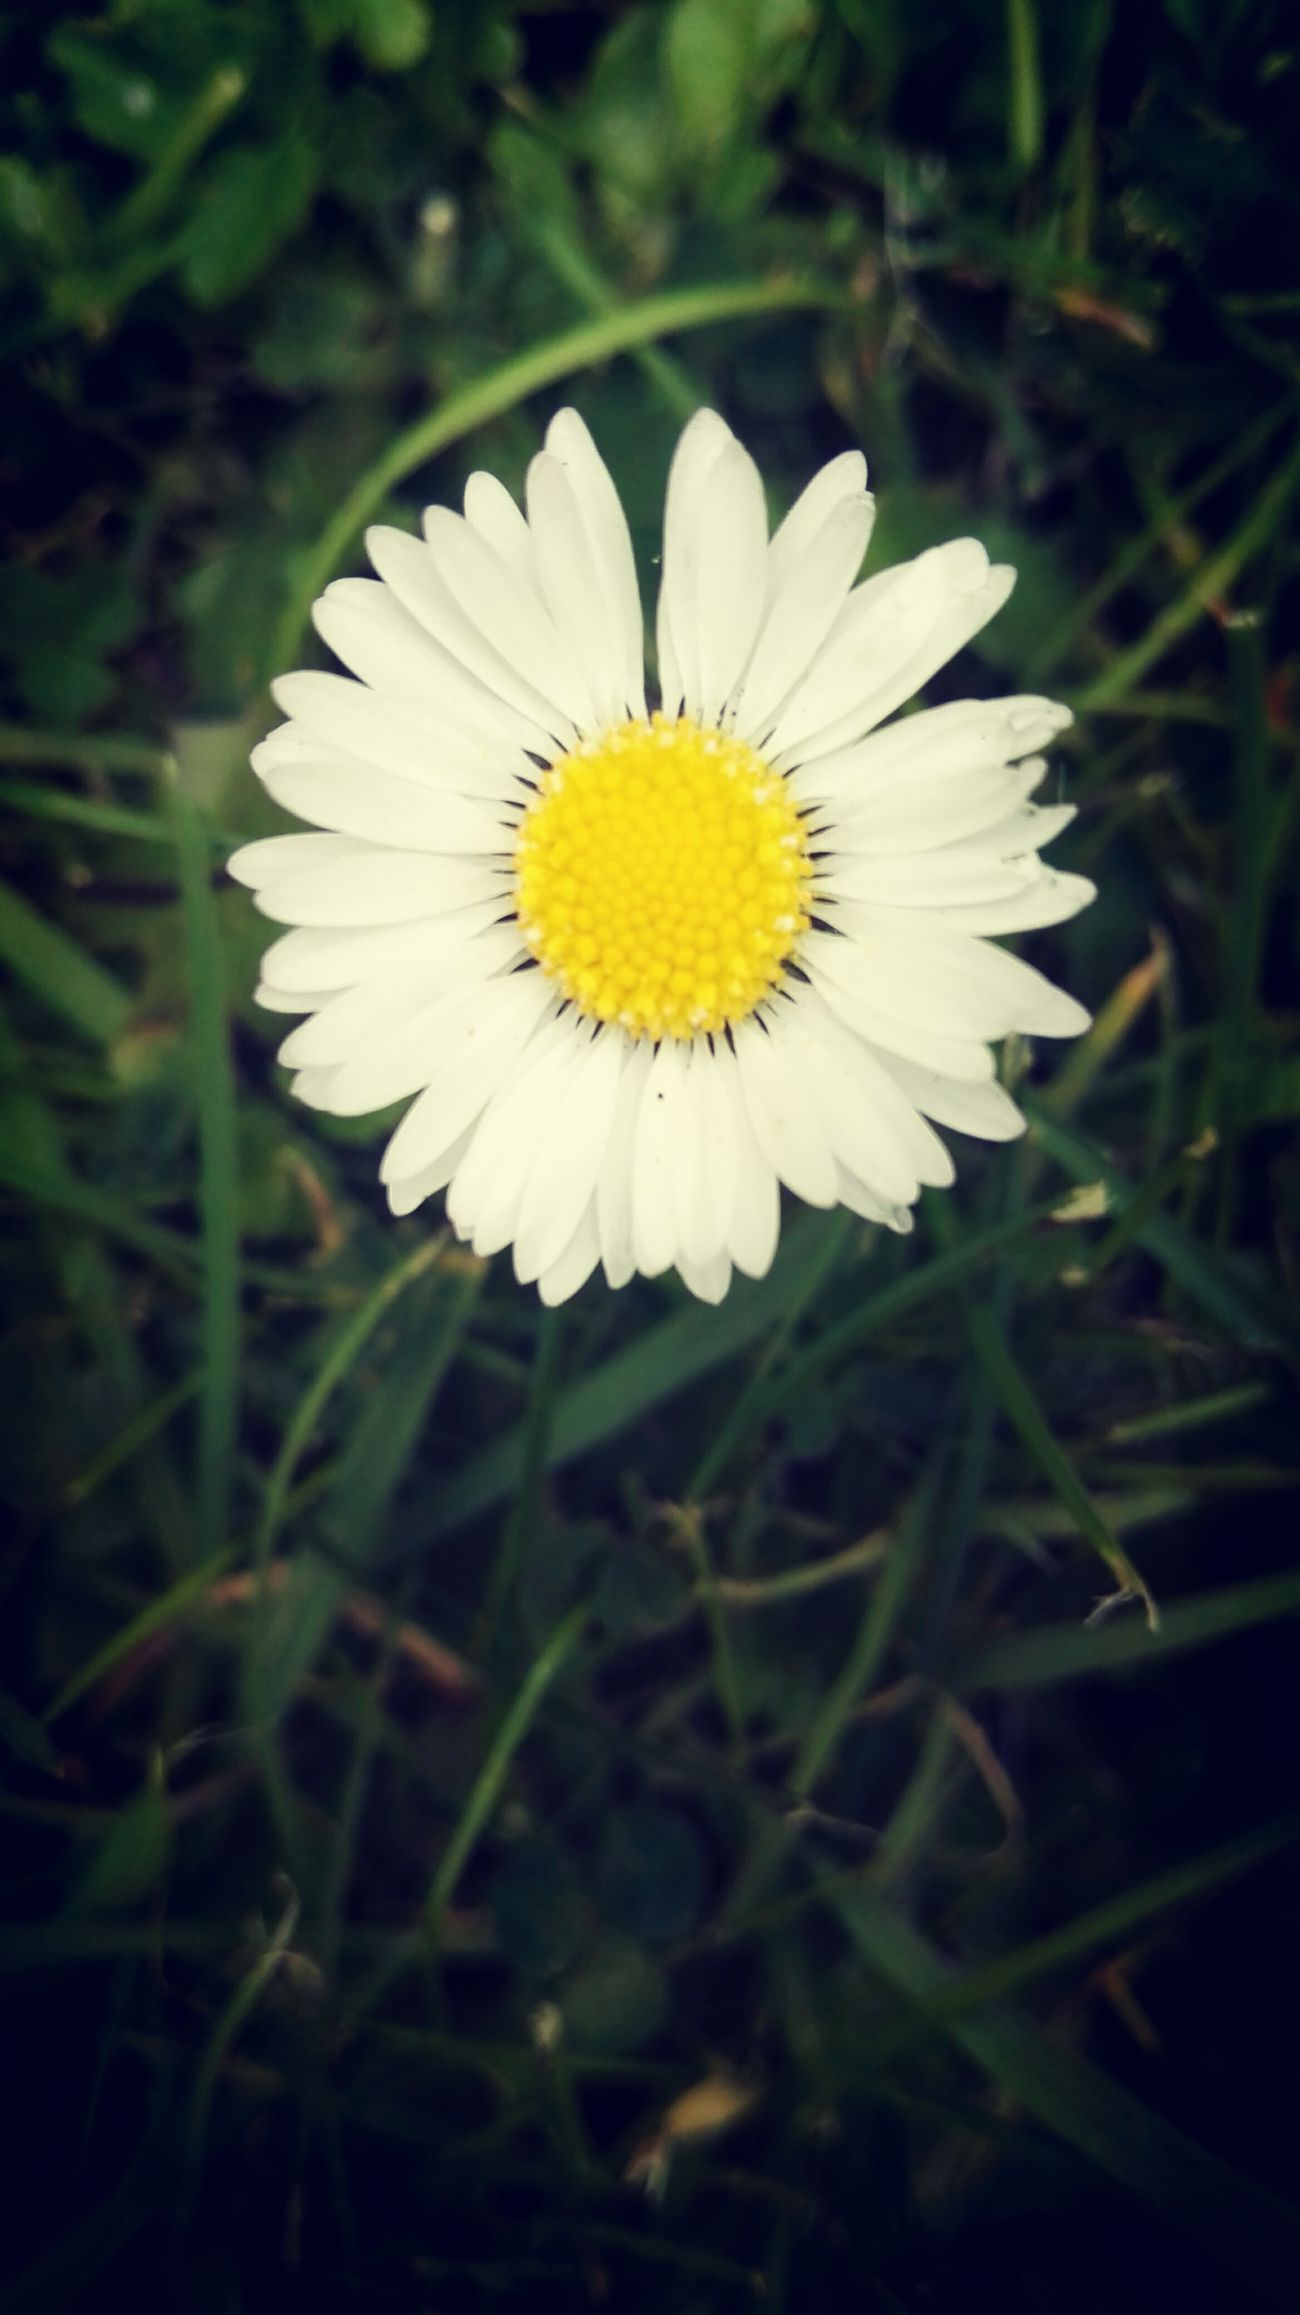 Daisy ☺ Flower Yellow Flower Head Petal Freshness White Color Close-up Growth Beauty In Nature Outdoors No People Eyem Best Shots Nature_collection Wildflower Spring 2017 Springtime EyeEm Best Shots Daisy Daisy Close Up